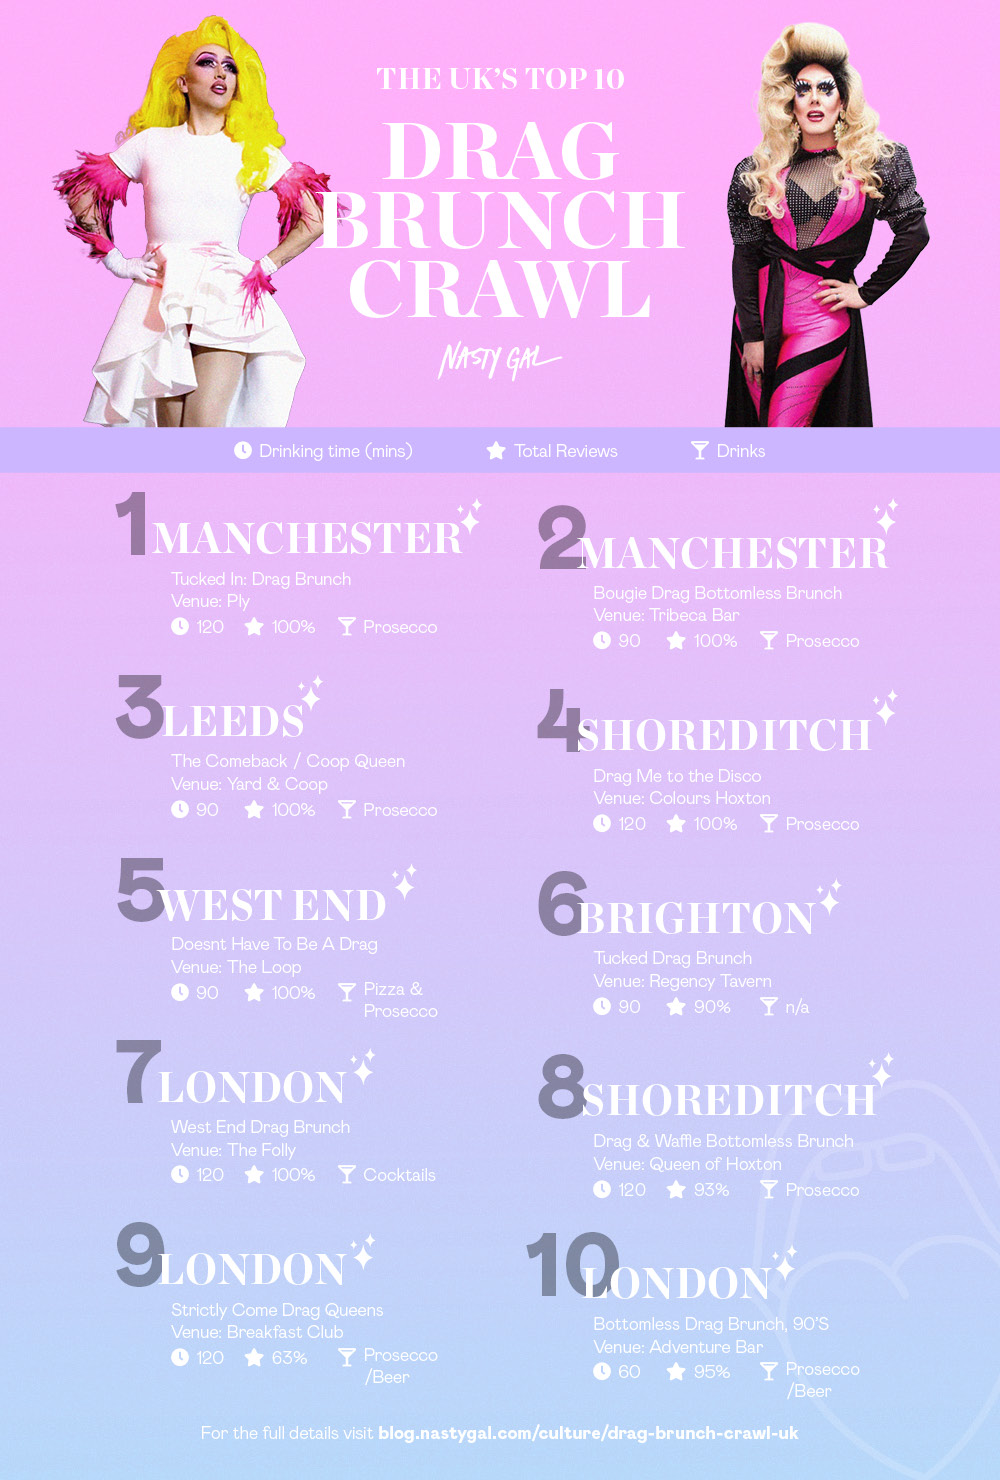 Top Drag brunches UK by City